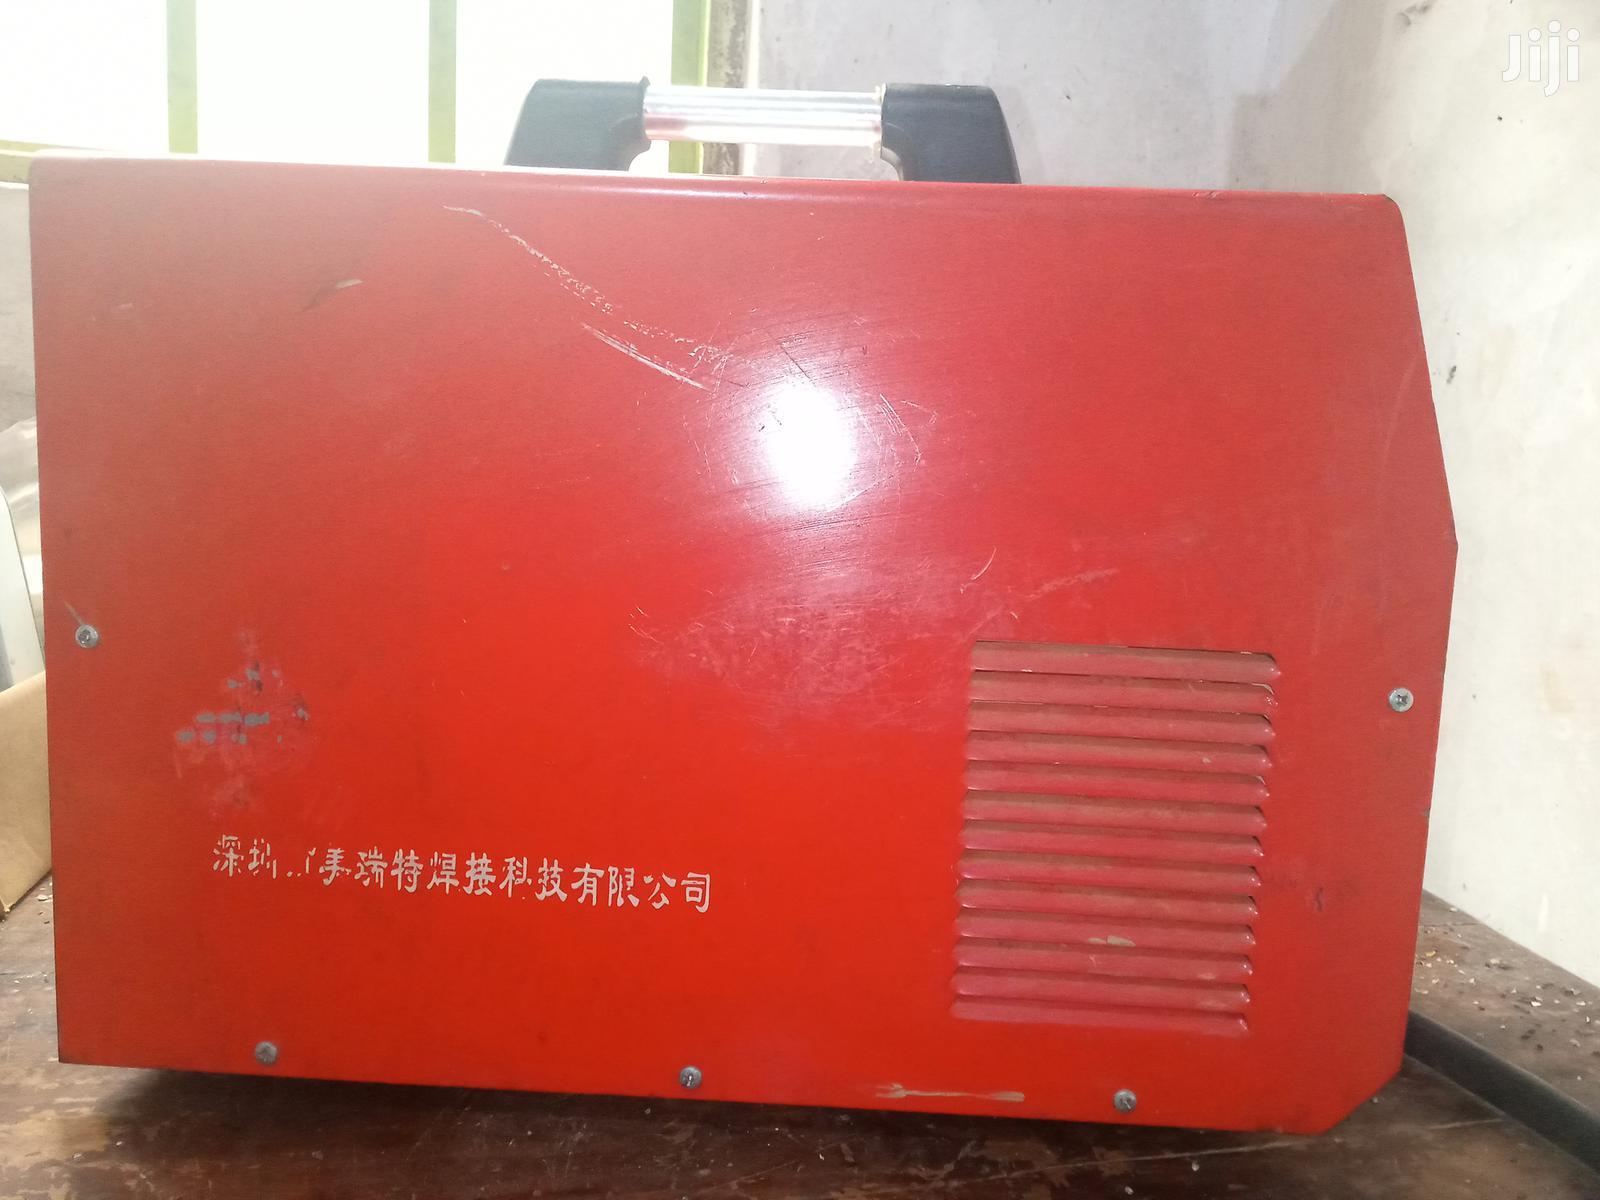 ARC Welding Machine 3 Phase. | Electrical Equipment for sale in Kampala, Central Region, Uganda